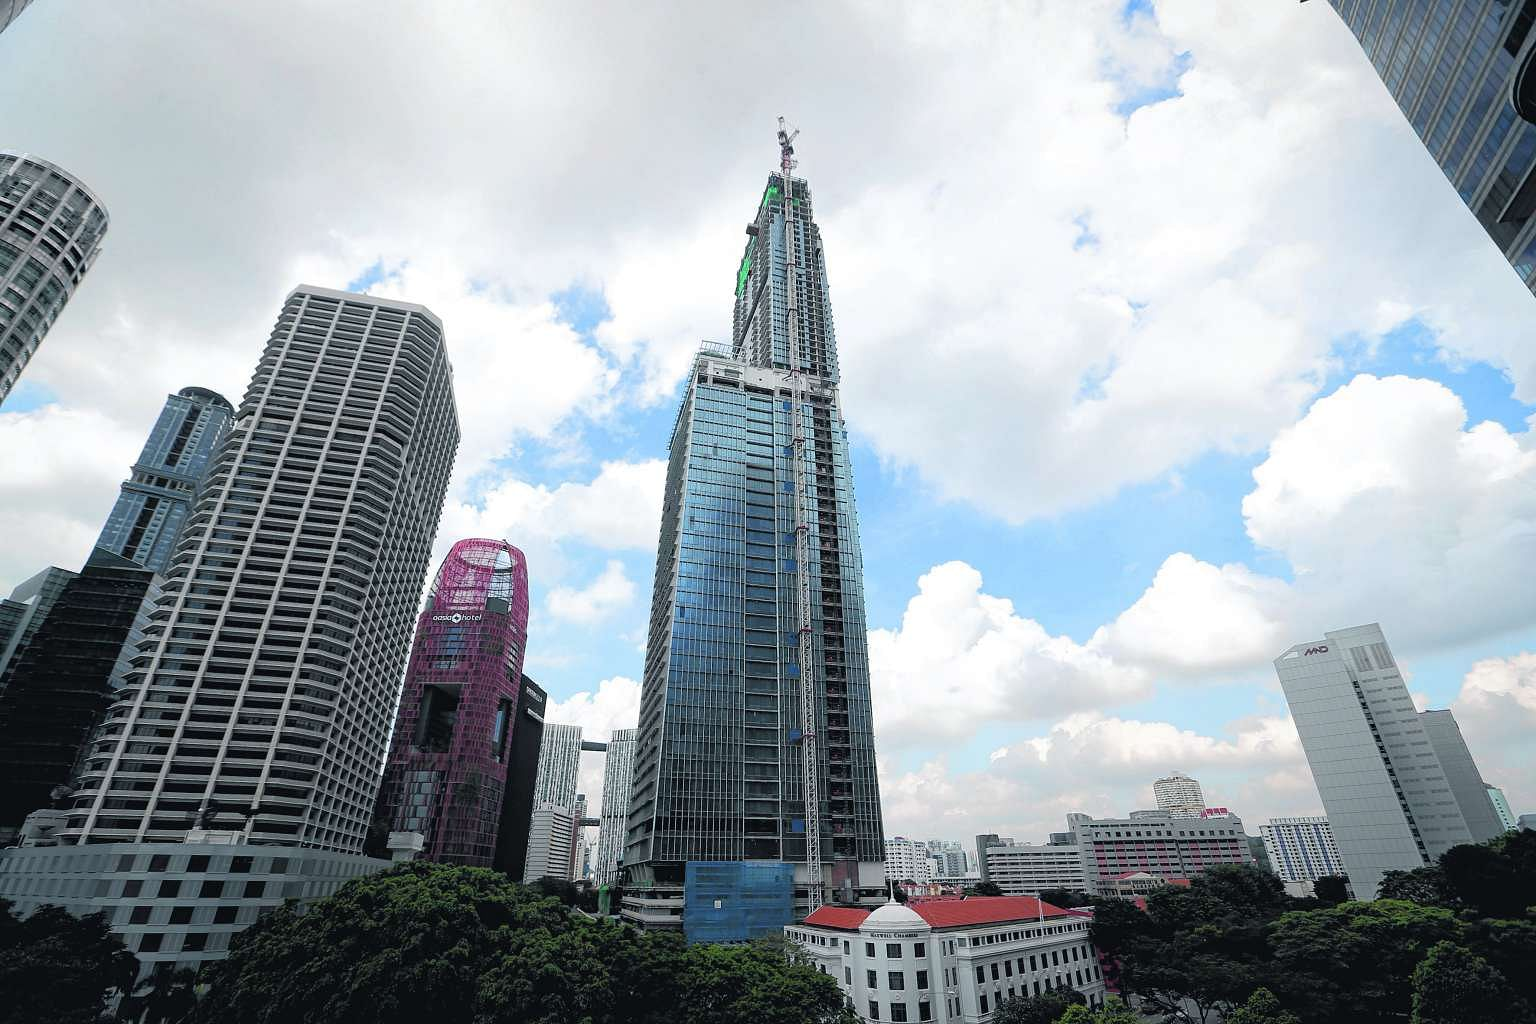 Tanjong Pagar Centre New Tallest Building In Singapore After 20 Years Business News Top Stories